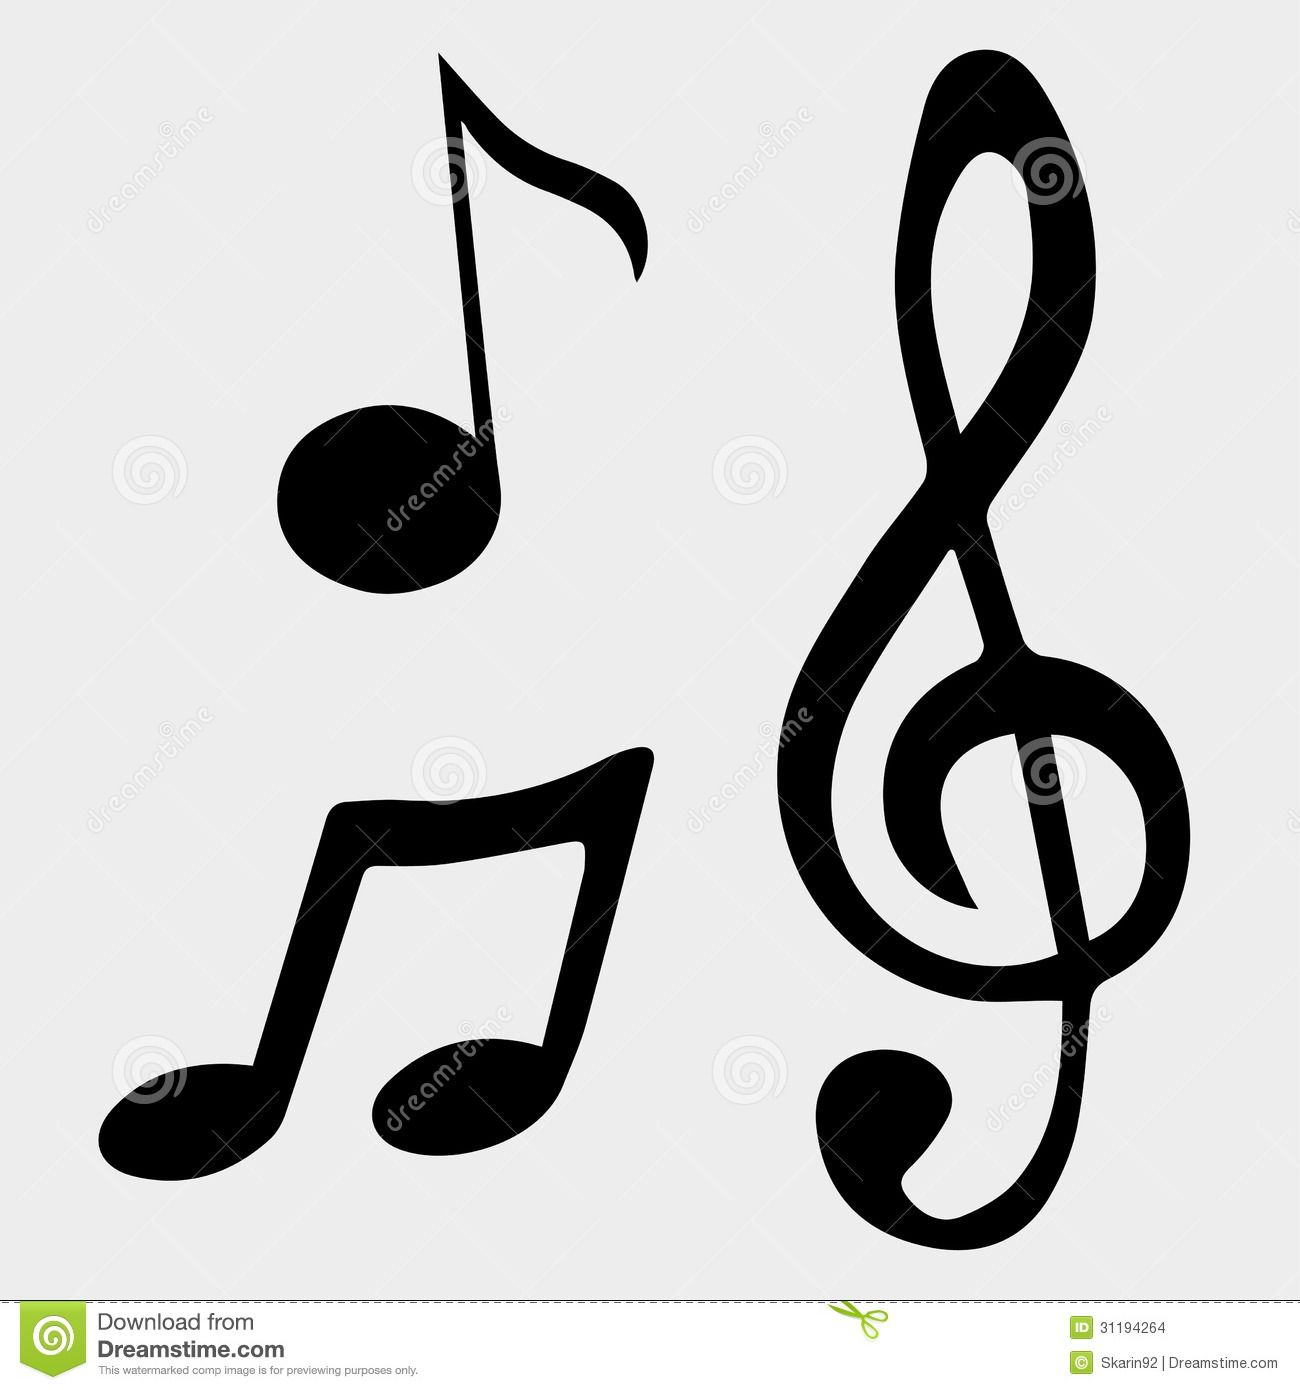 Vector music notes symbols sigilaffirmations music symbols vector music notes symbols sigilaffirmations biocorpaavc Image collections